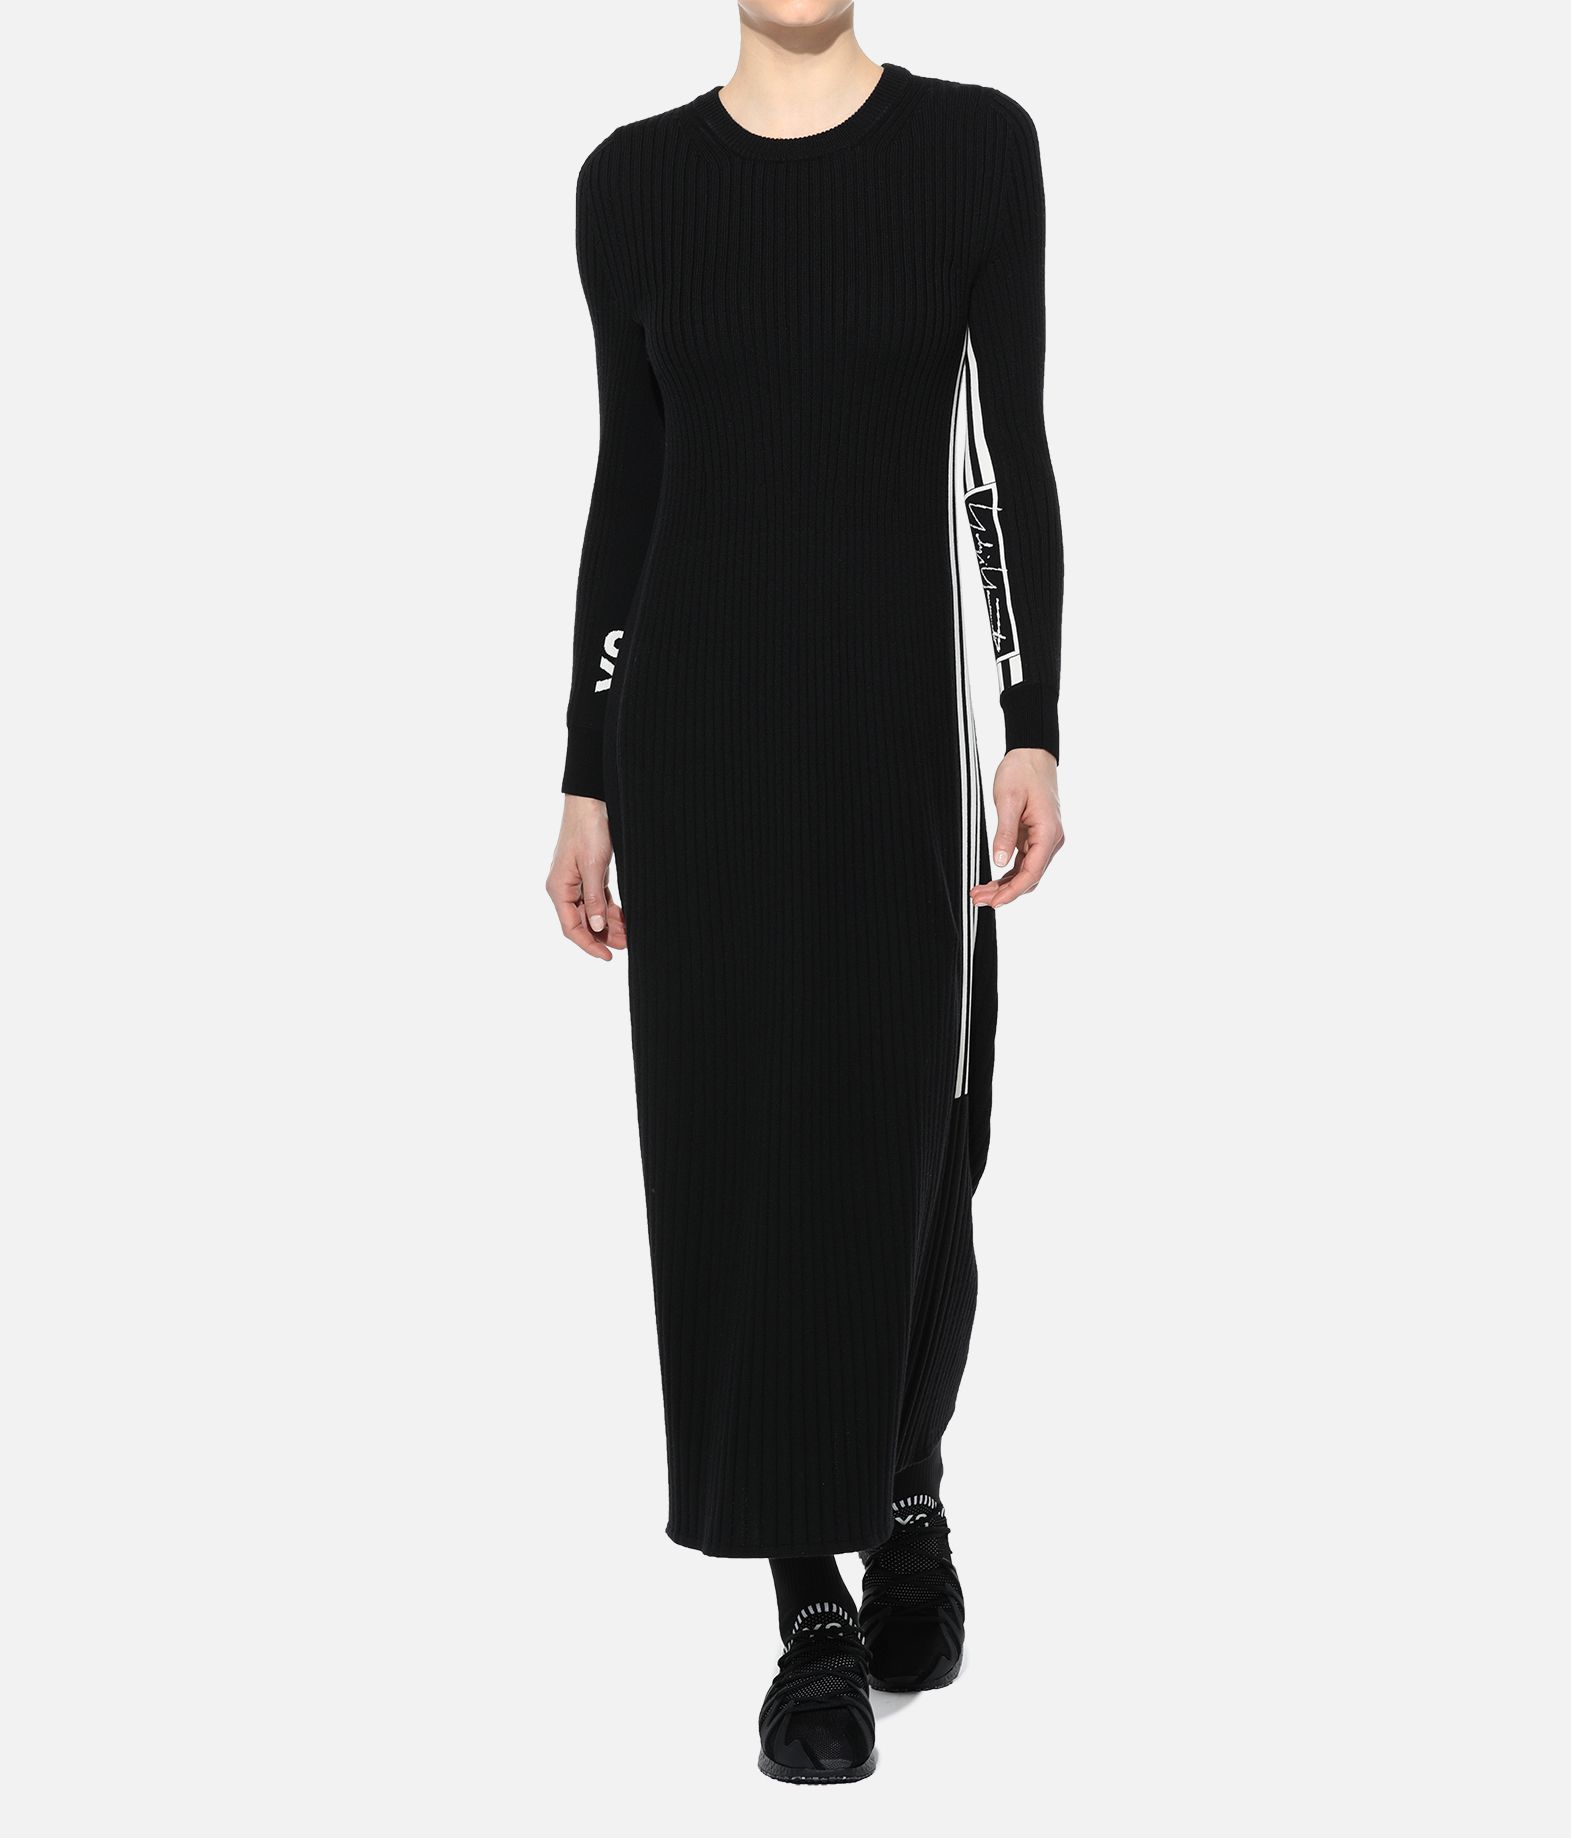 Y-3 Y-3 Tech Knit Dress Long dress Woman a